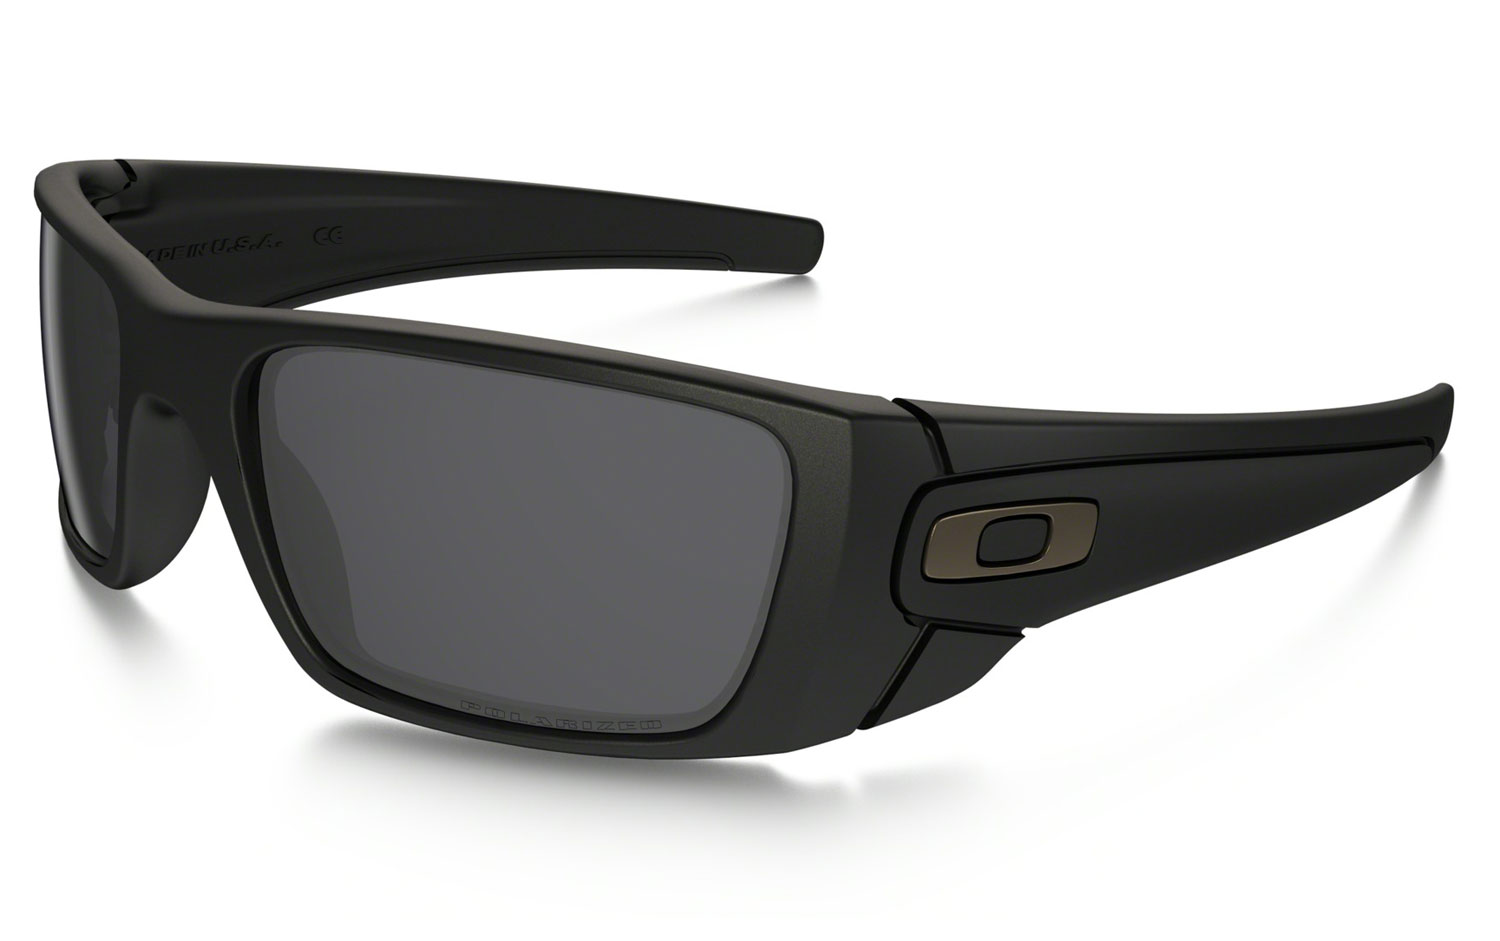 584ac97125c Oakley Polarized Matte Black Mens Sunglasses - OO9096-05